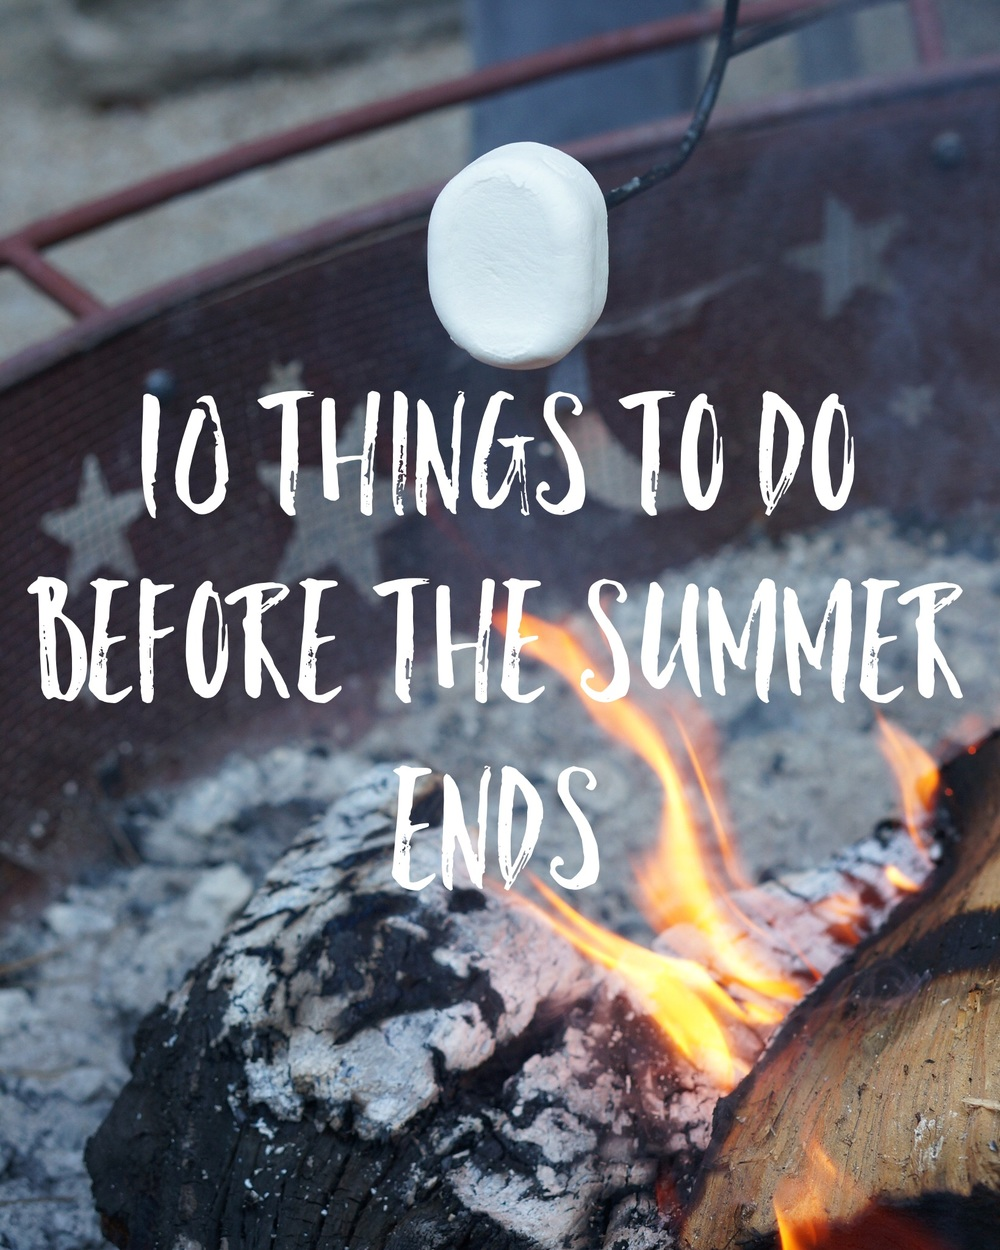 10 things to do before the summer ends